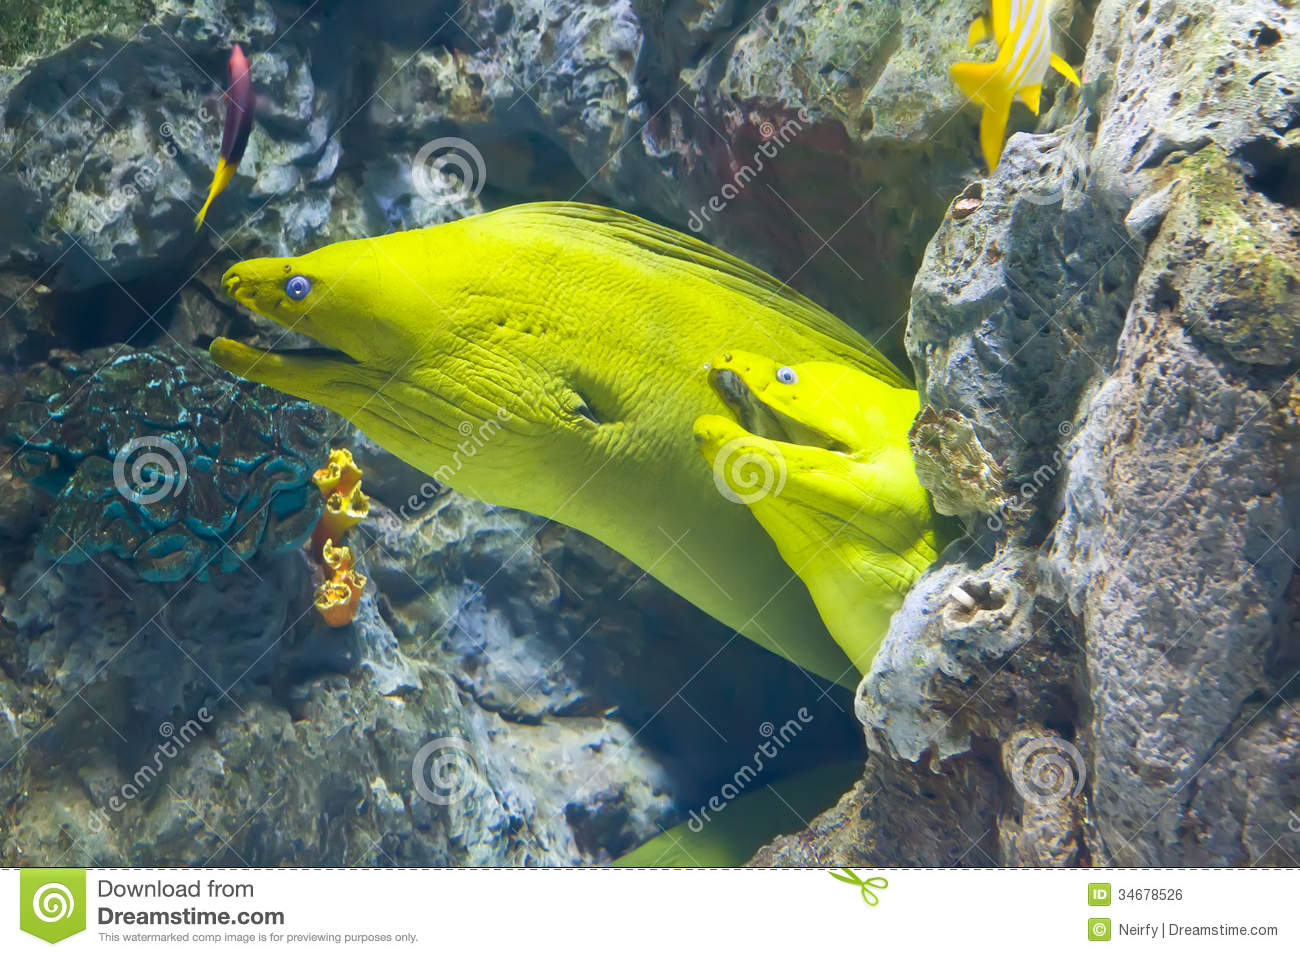 Coral reef fish yellow - photo#19